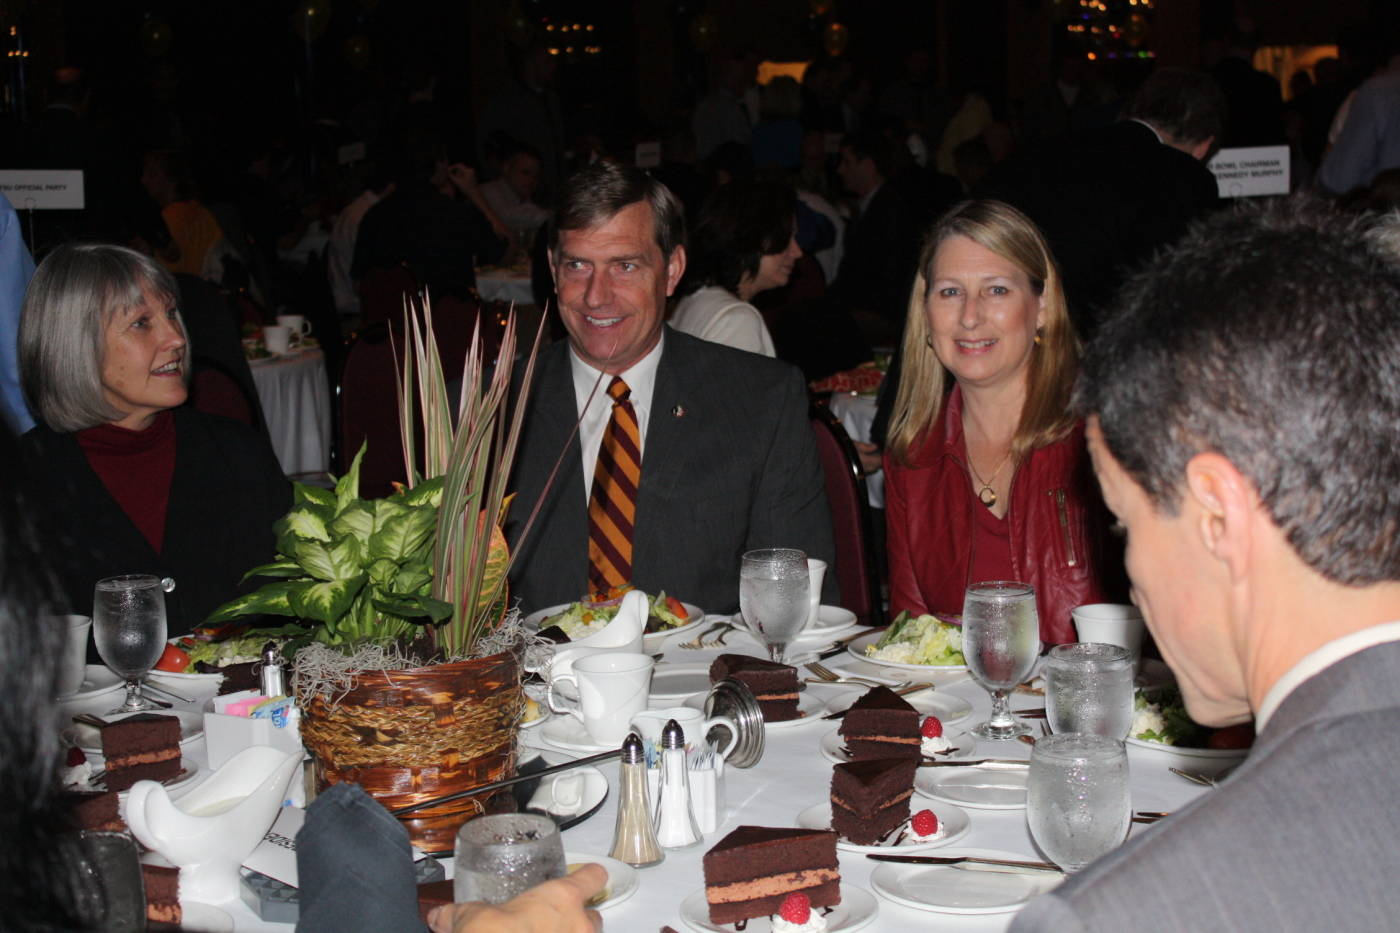 (From left to right): Molly Barron, FSU Athletics Director Randy Spetman and wife Becky Spetman at the Gator Bowl Luncheon and Hall of Fame Induction.